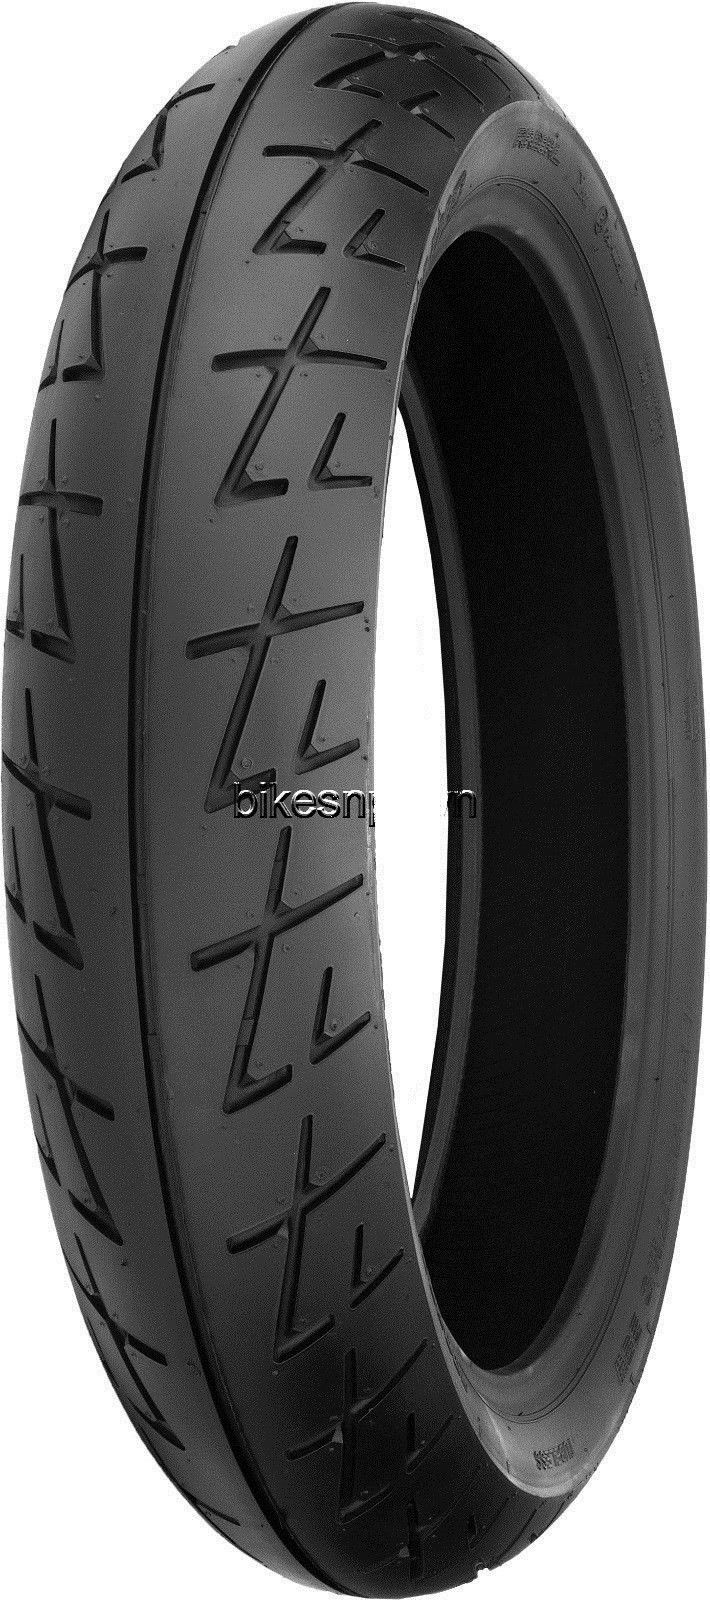 New Shinko 009 Raven Radial 120/70ZR17 Front Sportbike Motorcycle Tire